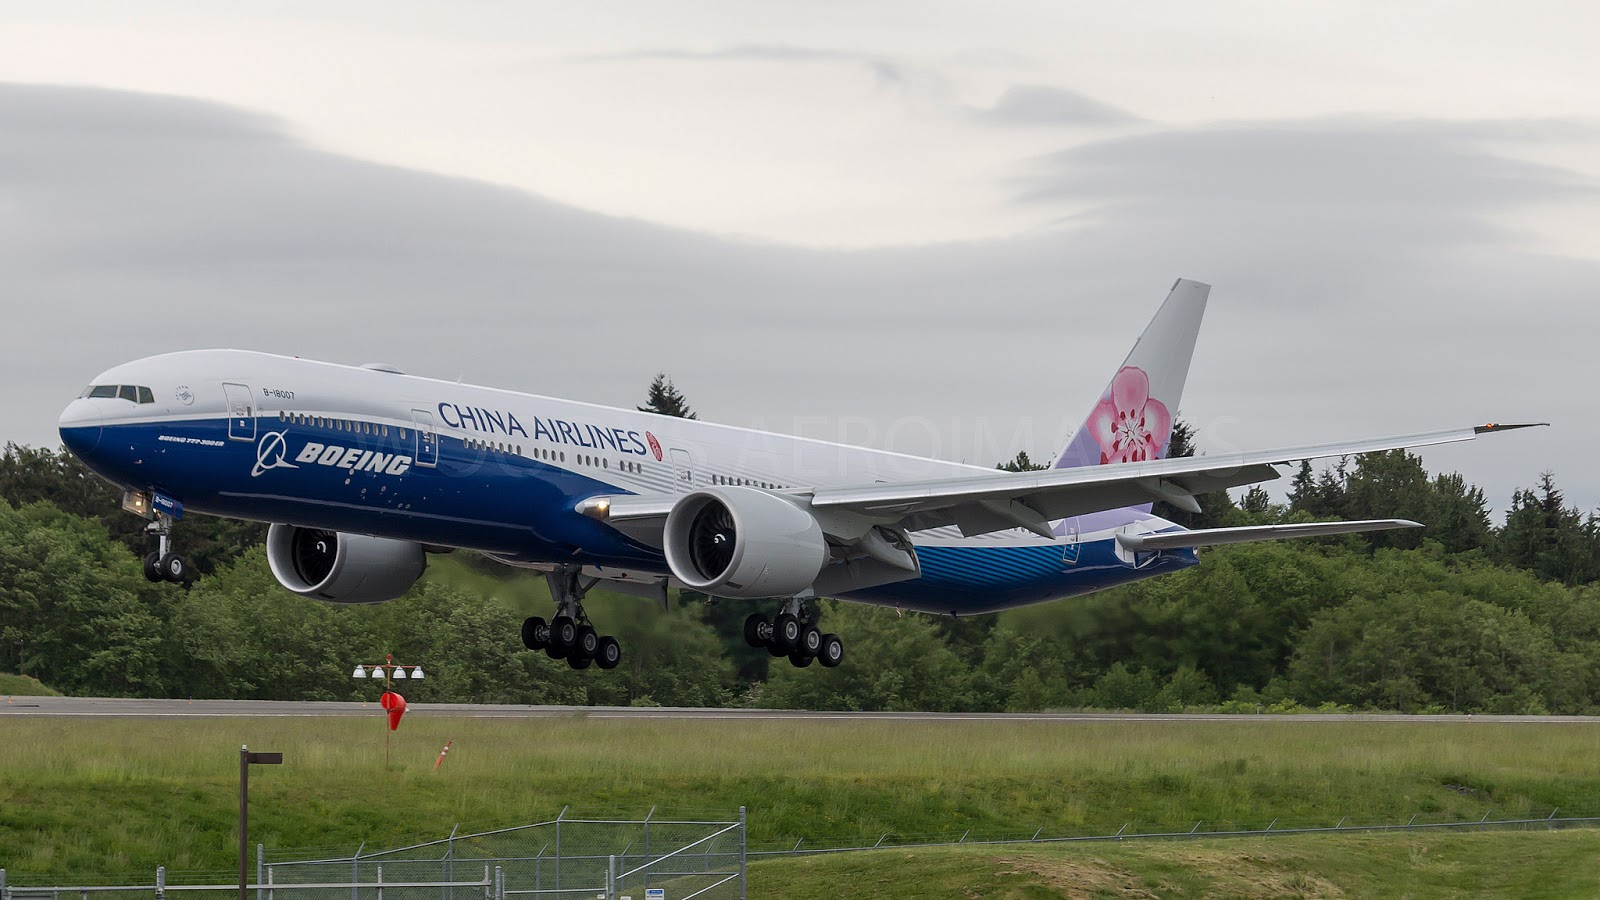 china airlines how to cancel flight